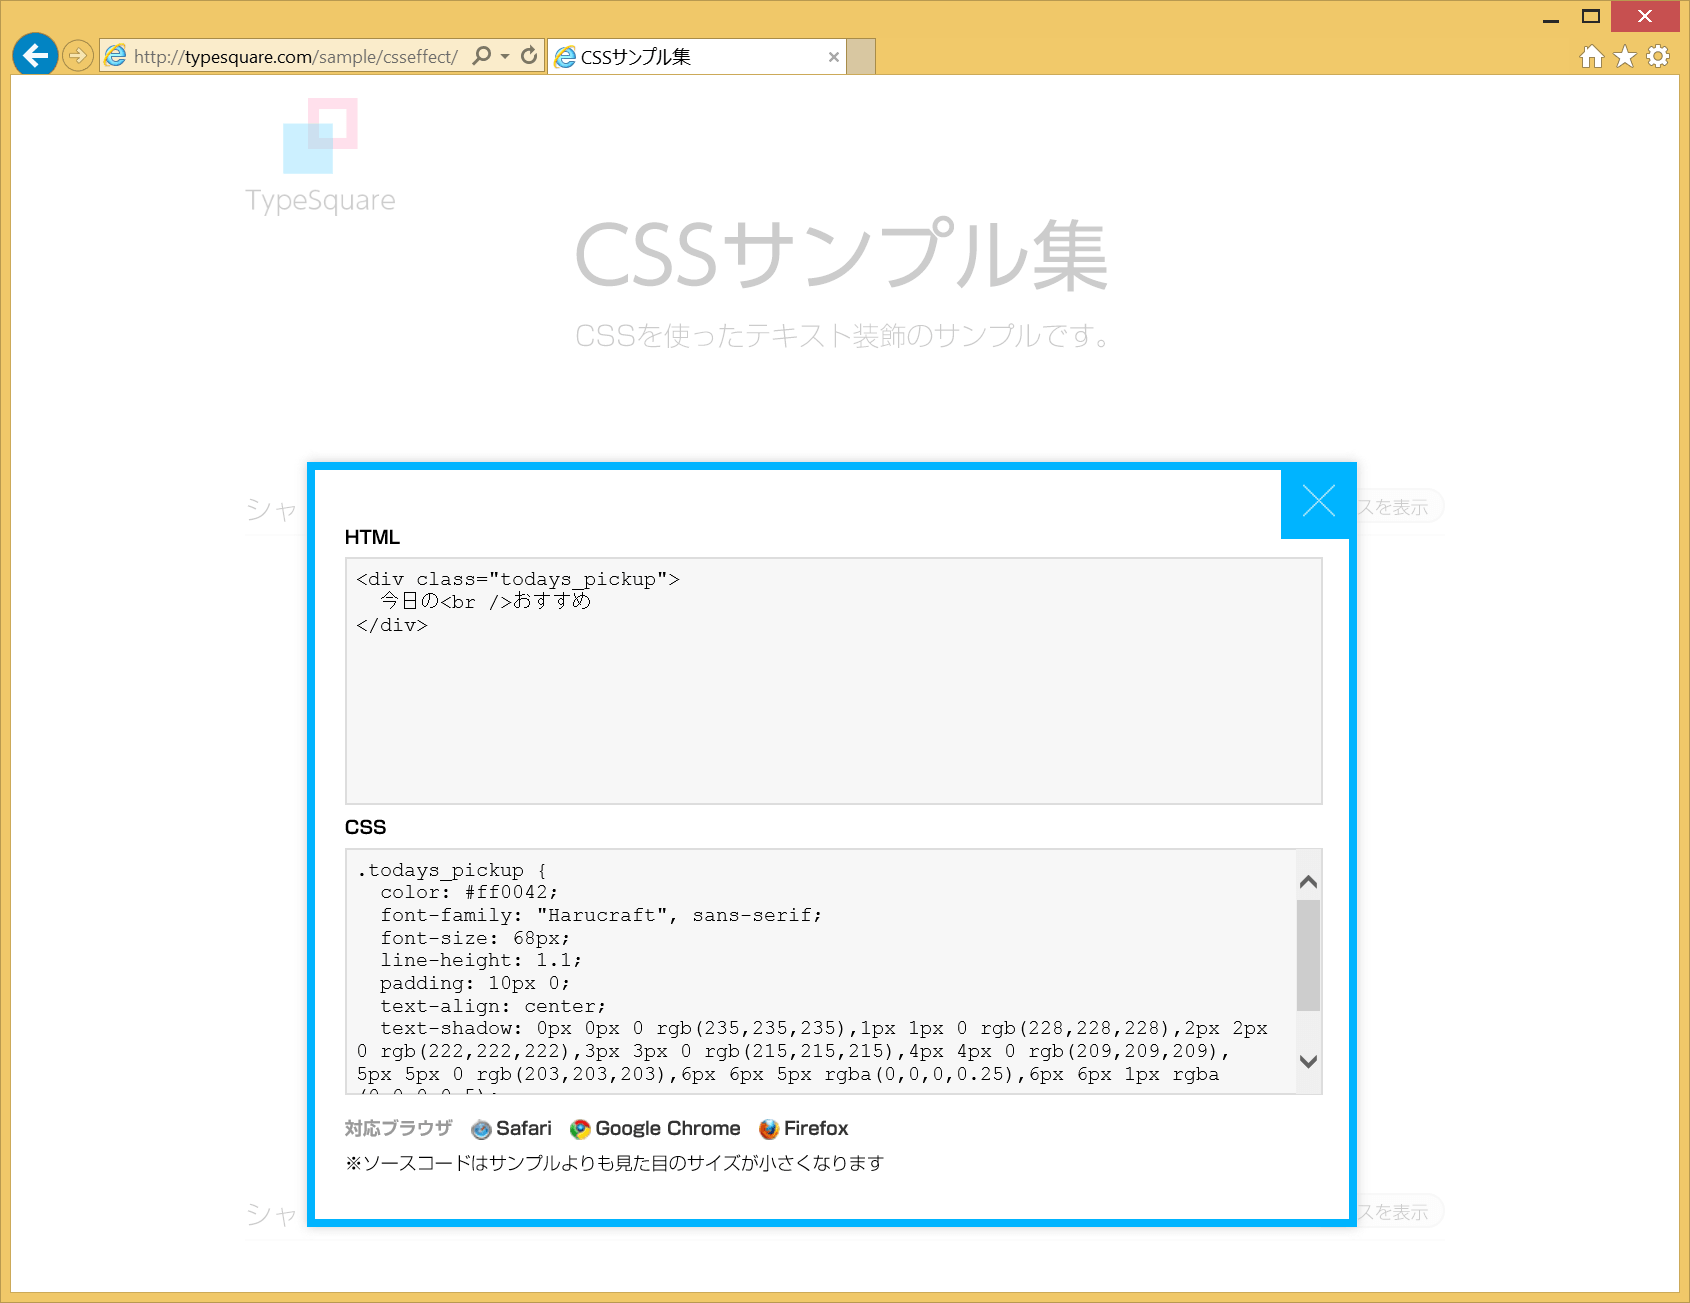 csseffect_source_ie11_win81_mbpr13